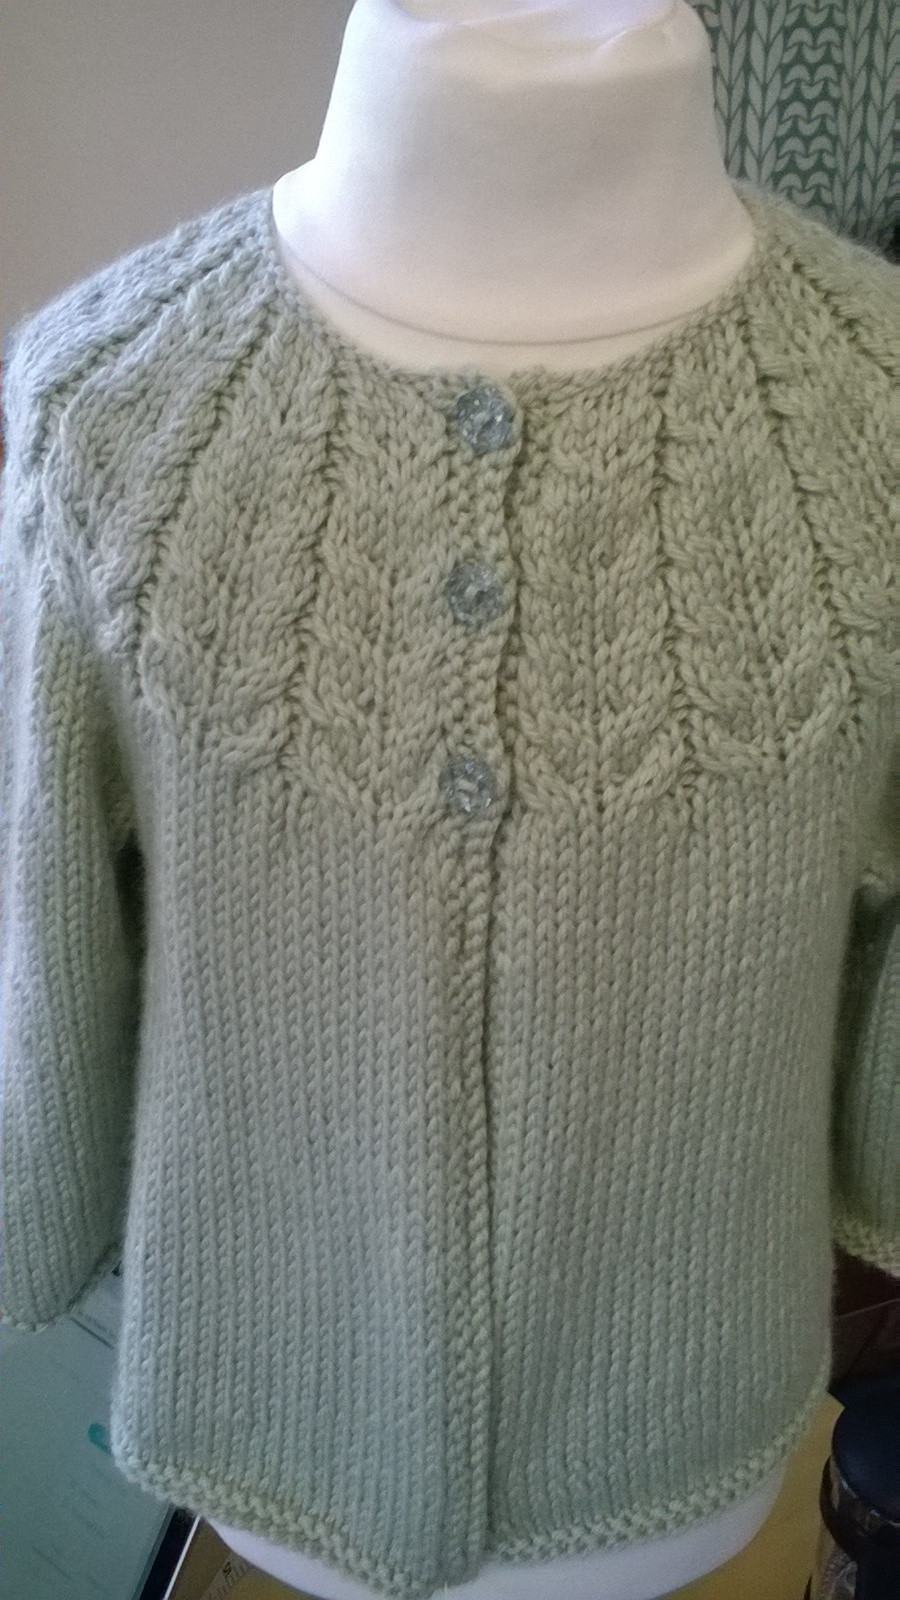 Cable Yoke Cardigan - Debbie Bliss